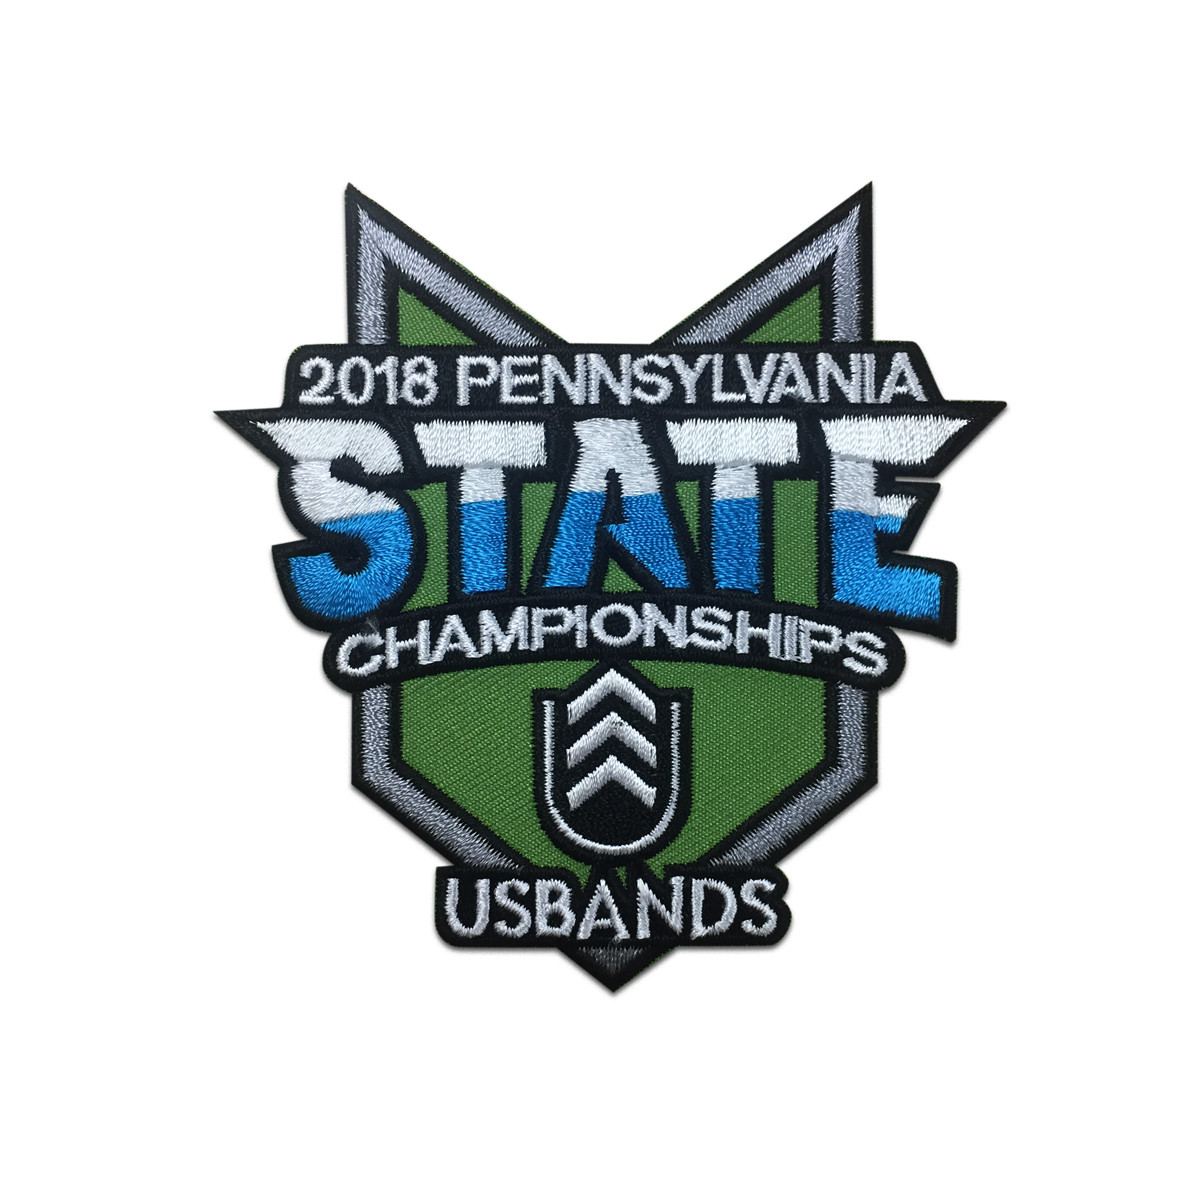 2018 USBands Pennsylvania State  Championship Event Patch